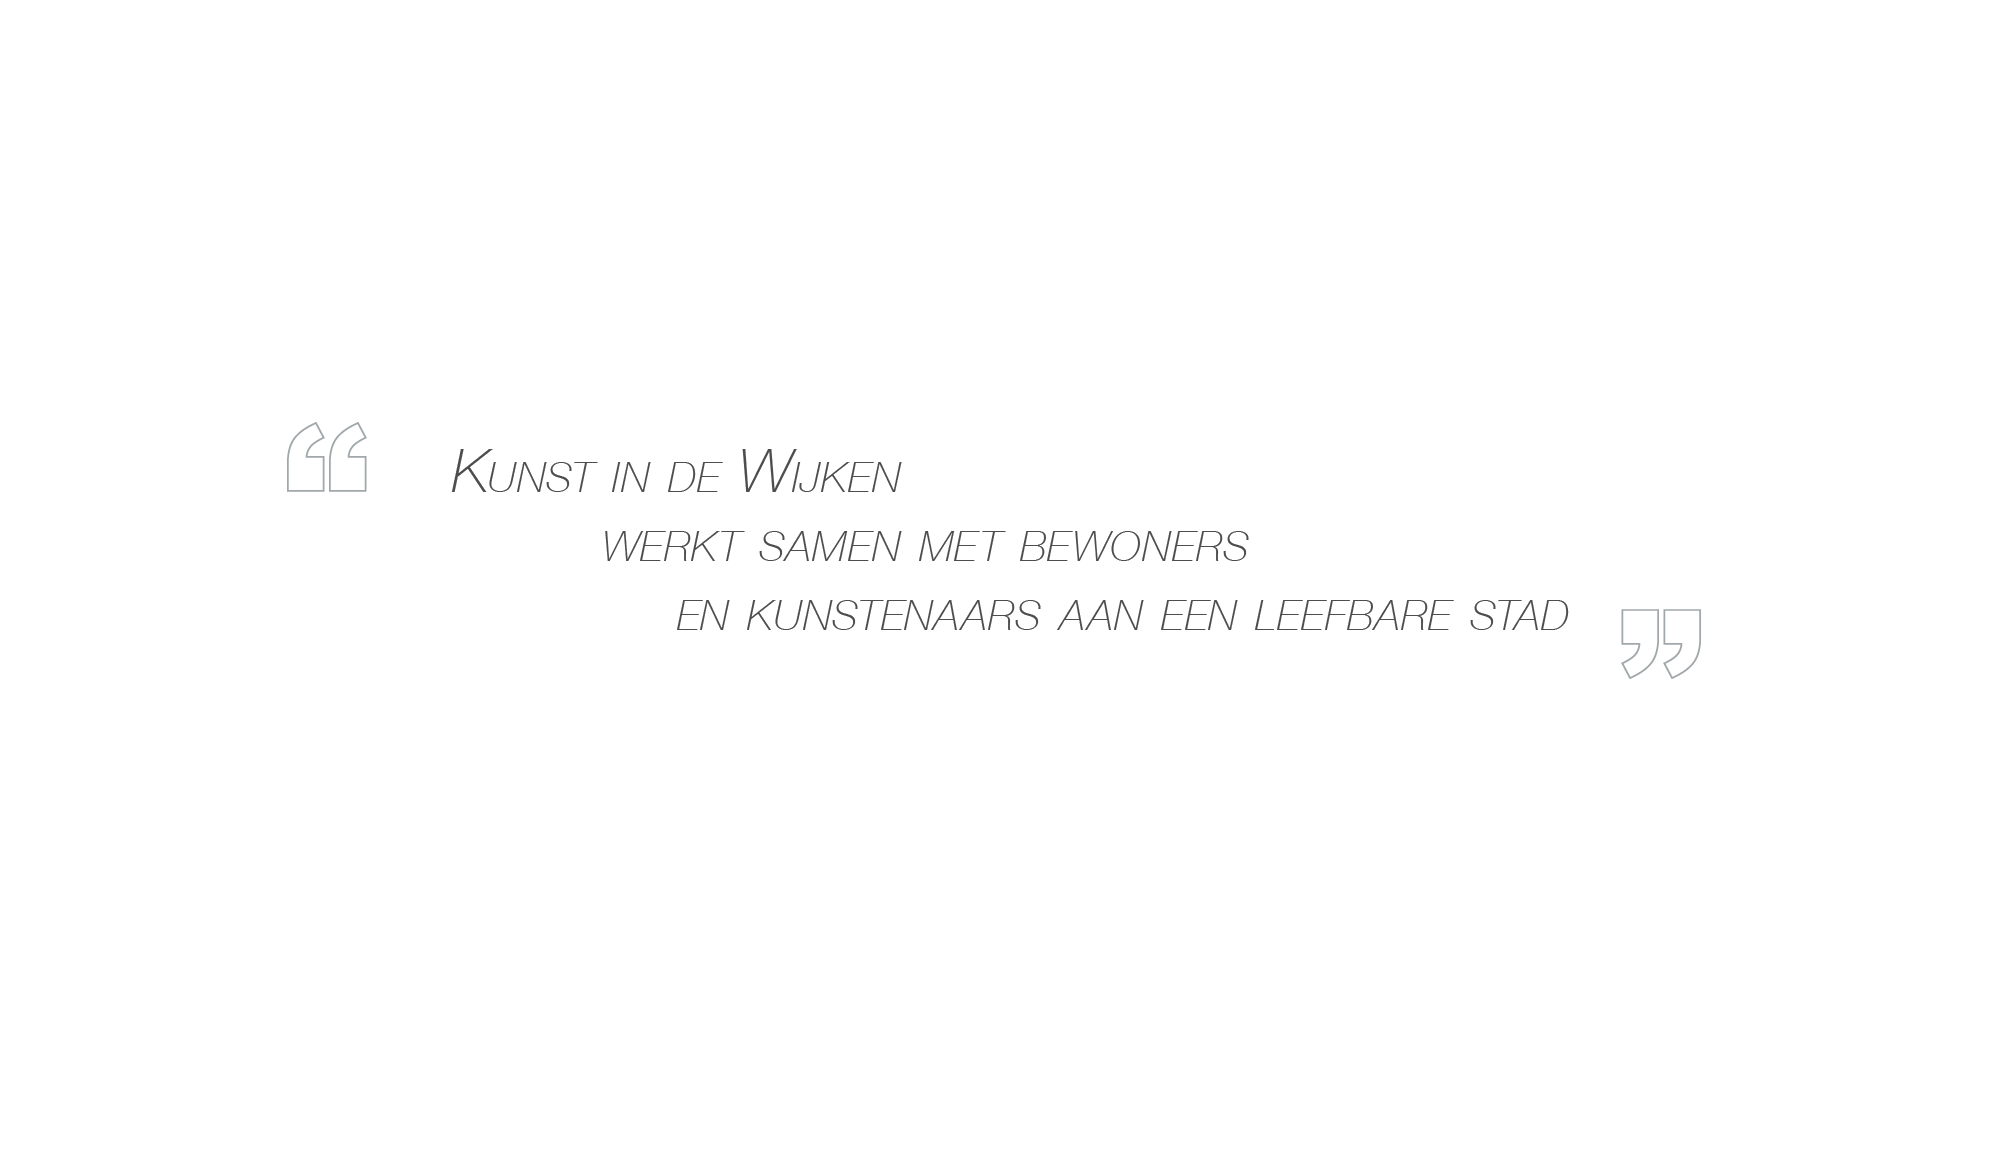 KidW quote-01